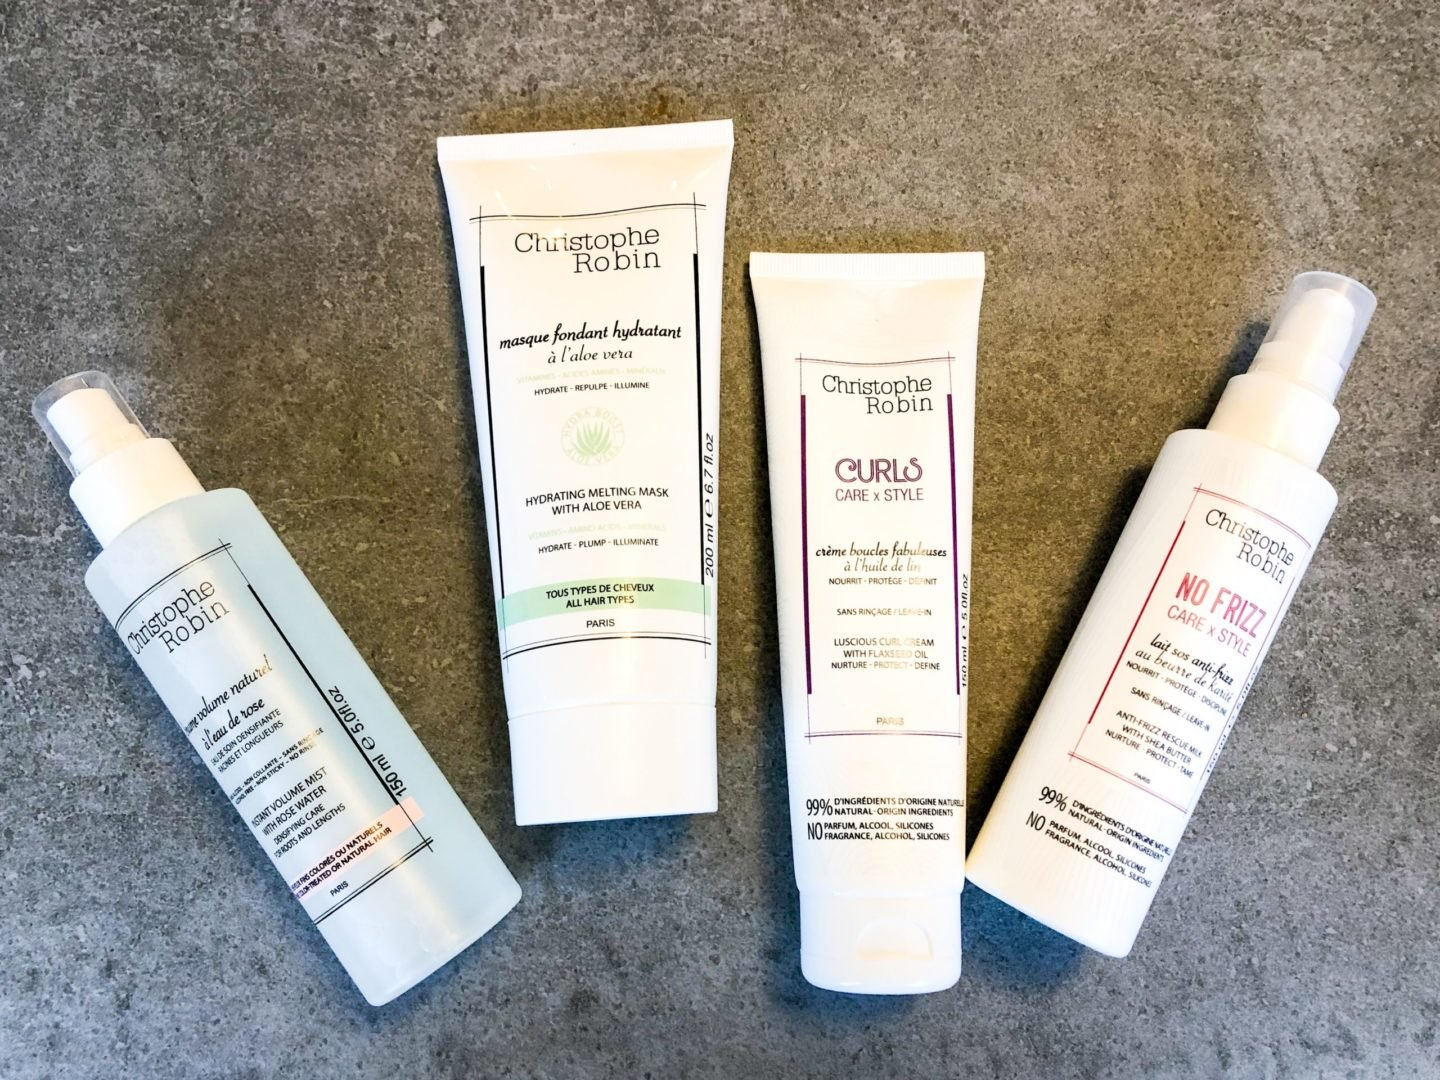 Christophe Robin curly girl method approved Anti-Frizz Rescue Milk with Shea Butter